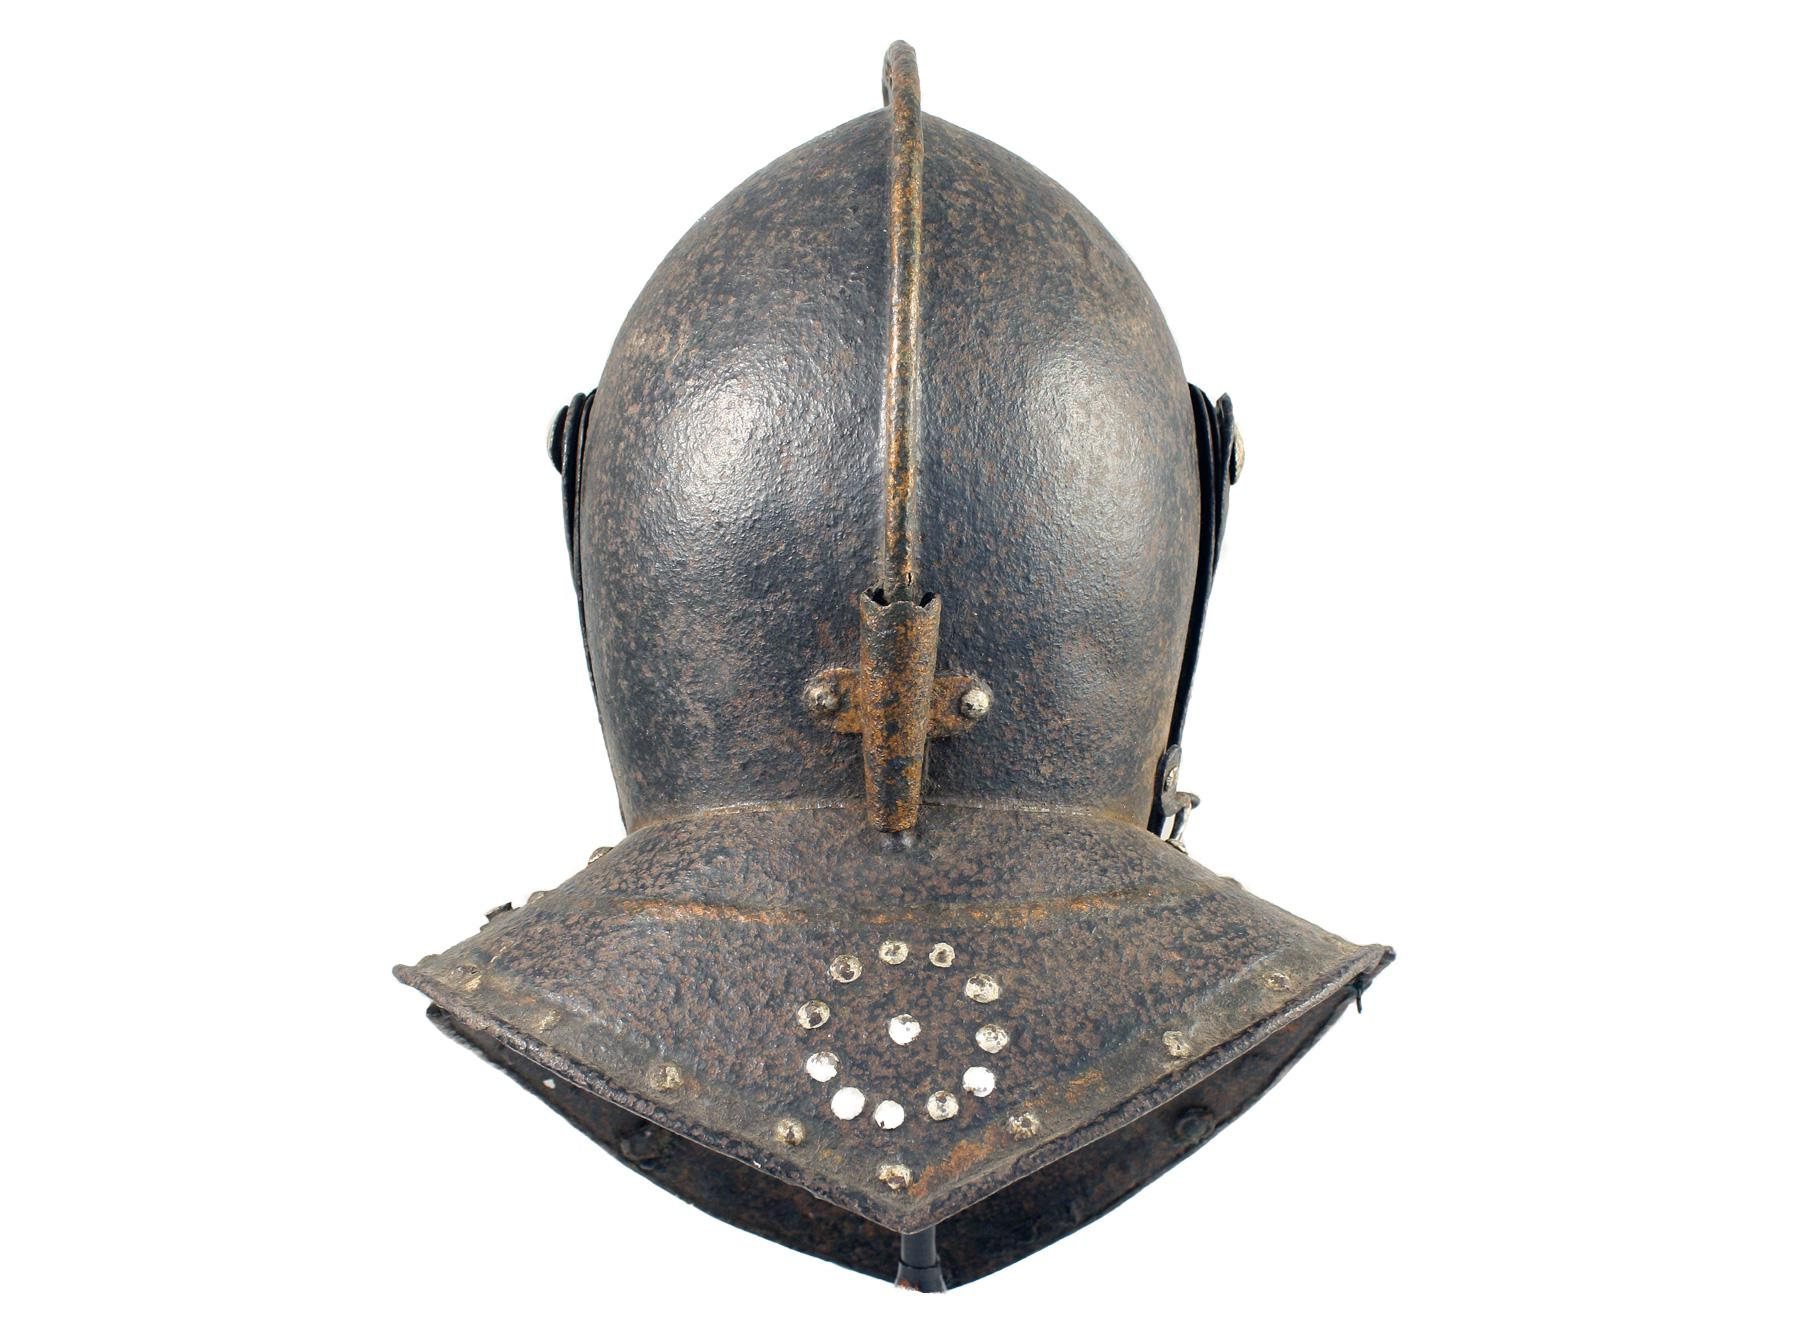 A Funerary Helm, 17th Century